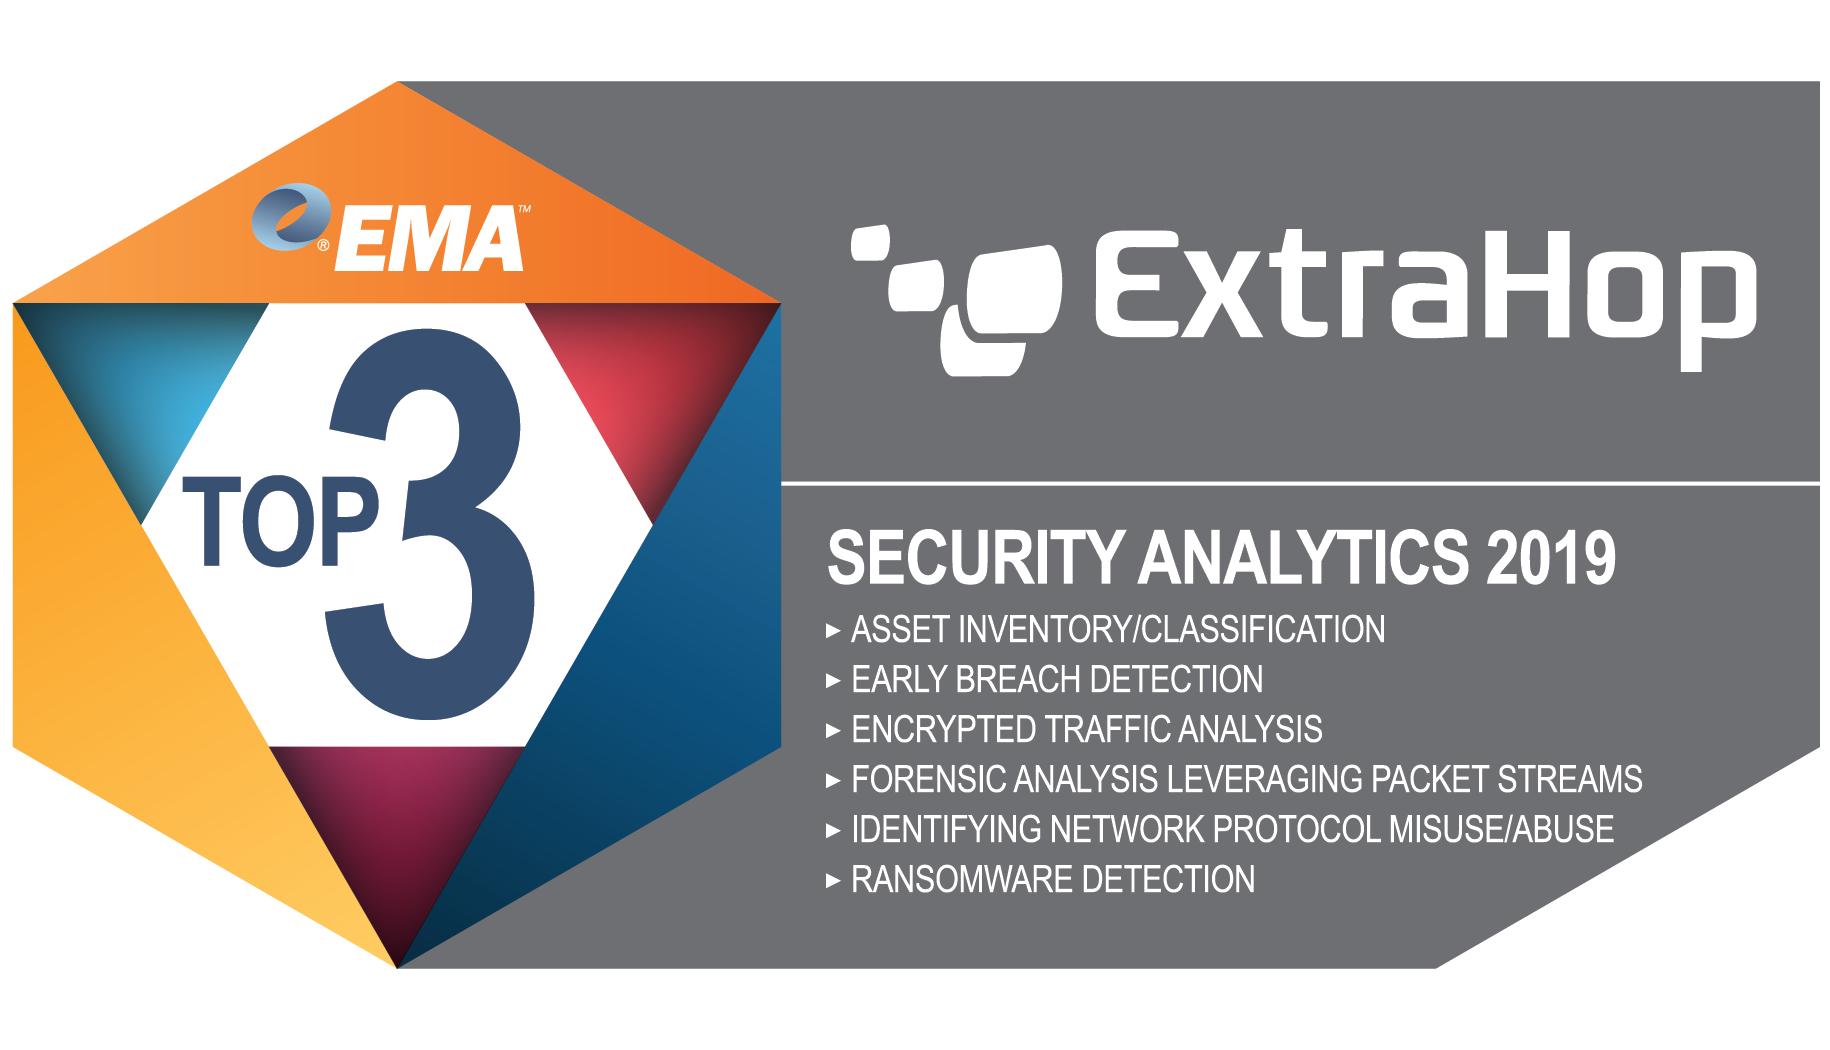 Top 3, EMA Security Analytics 2019